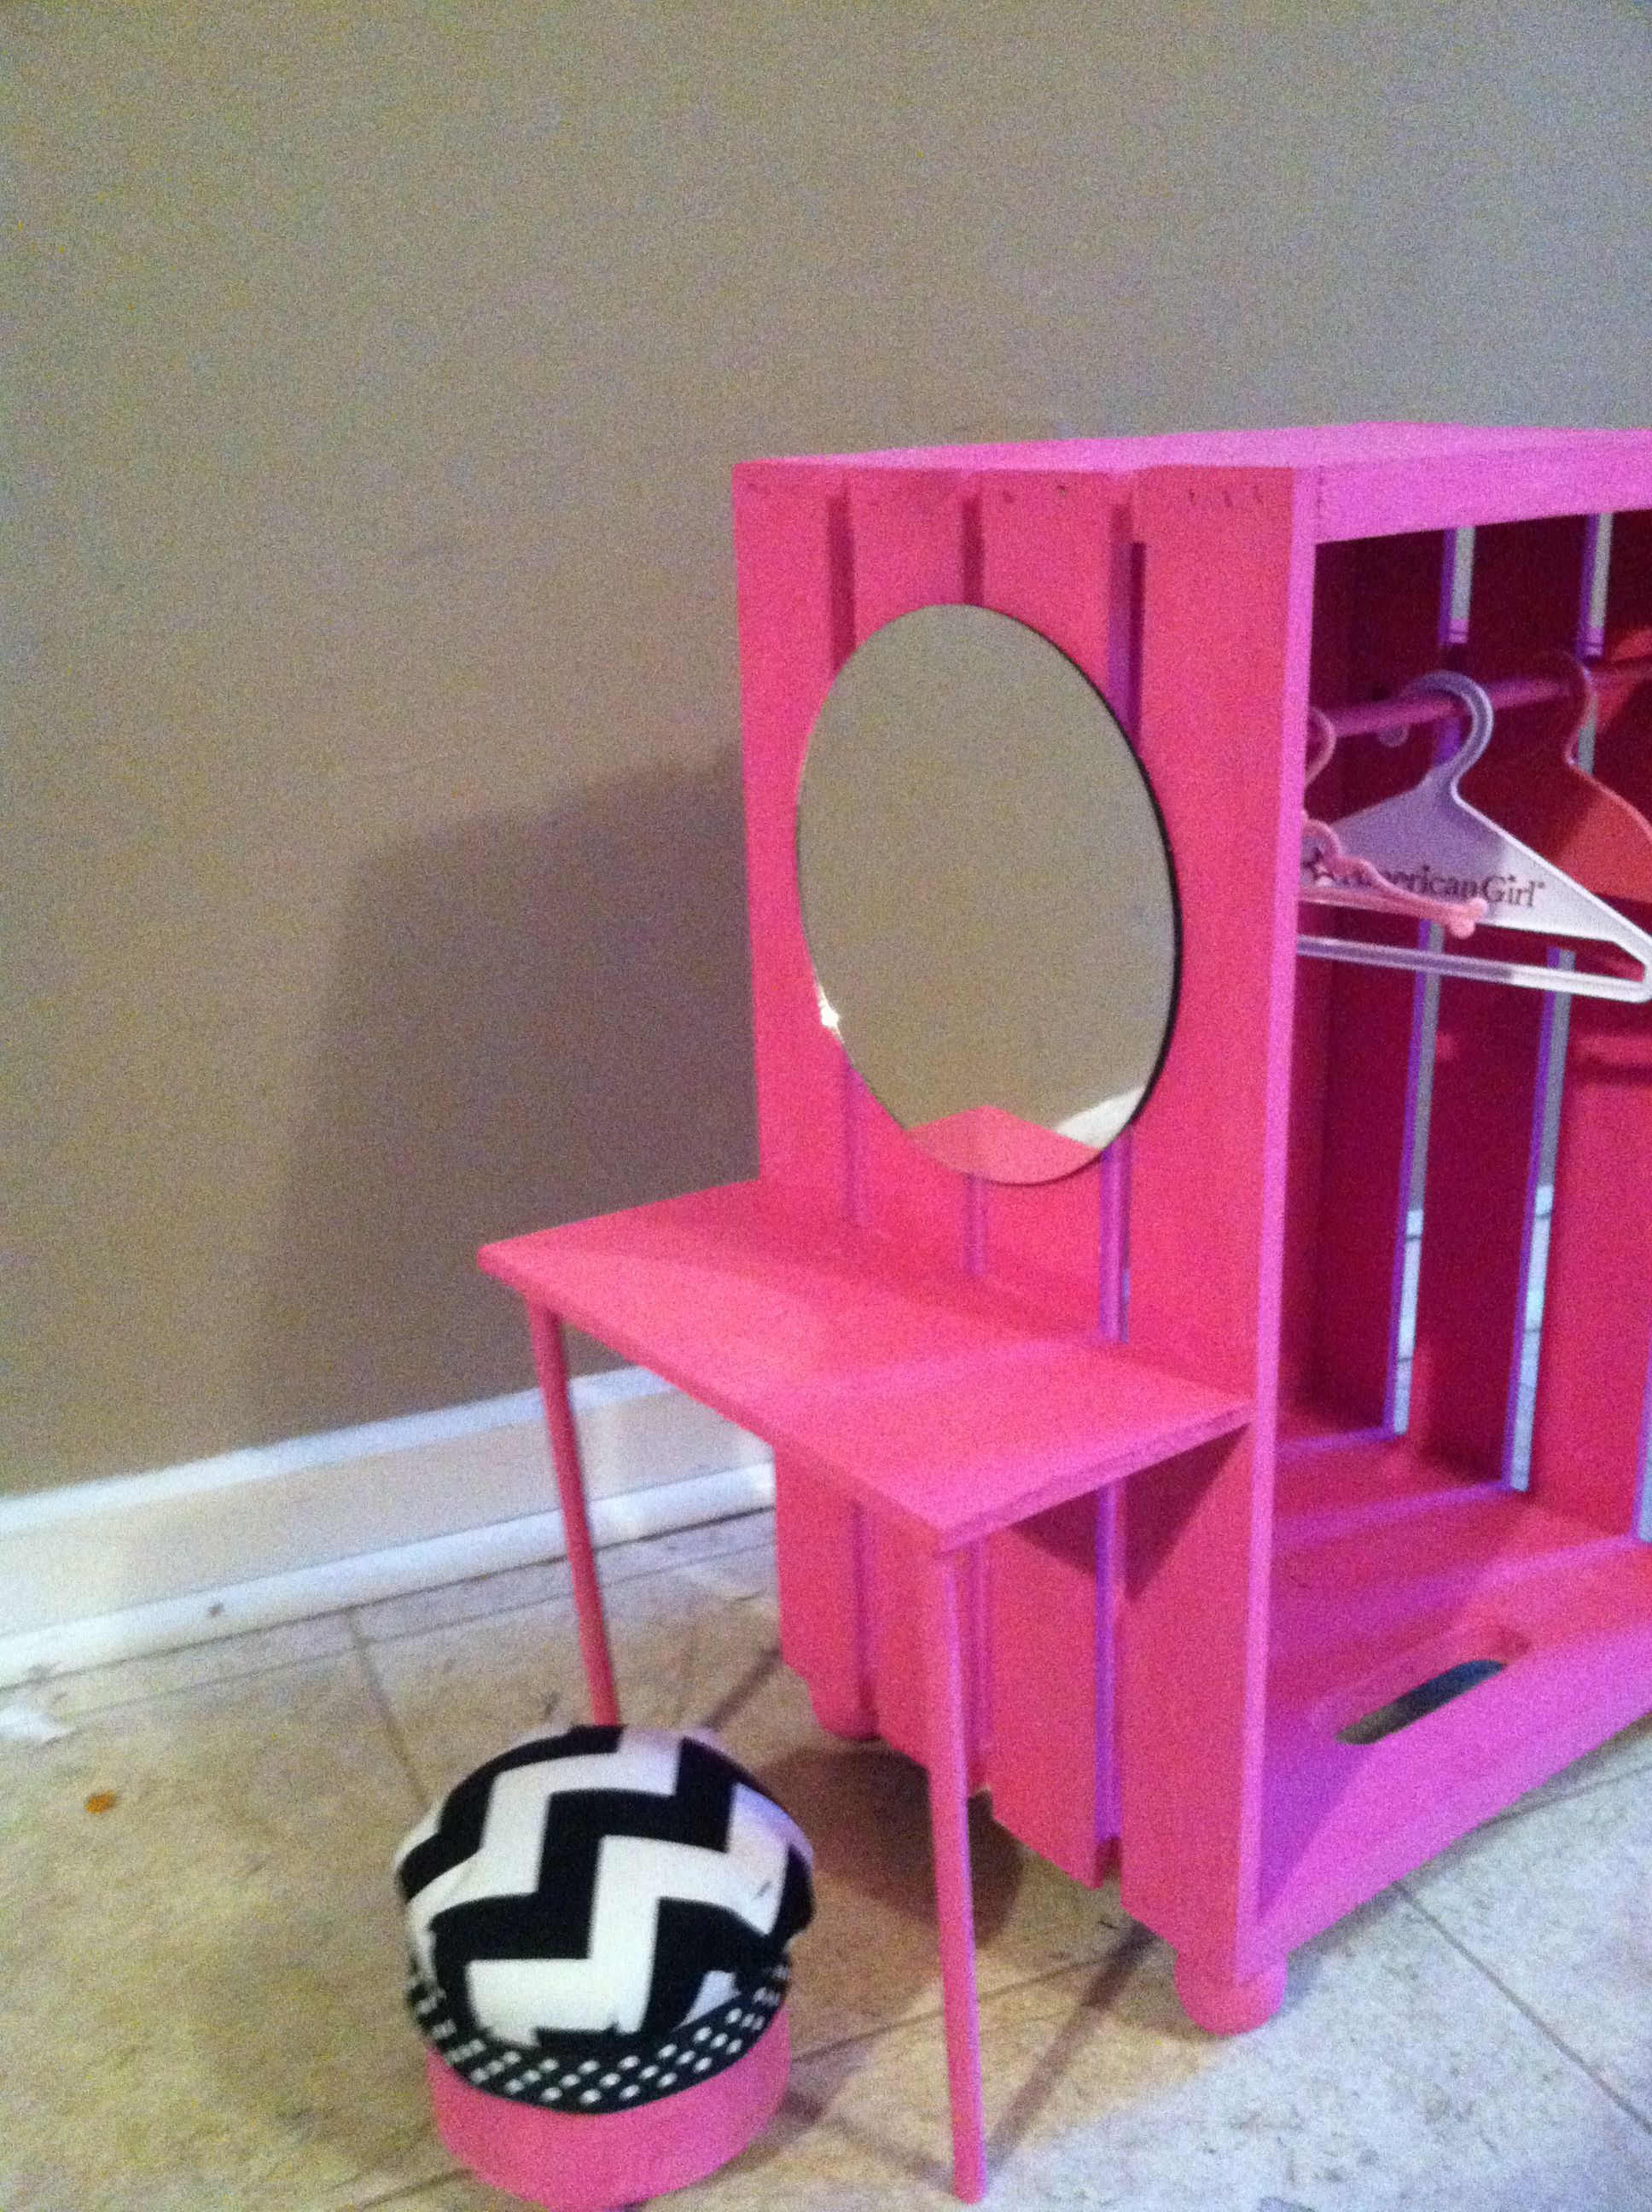 Closet And Vanity All In One Looks Like A Painted Wooden Crate With A Mirror And Added Piece Of